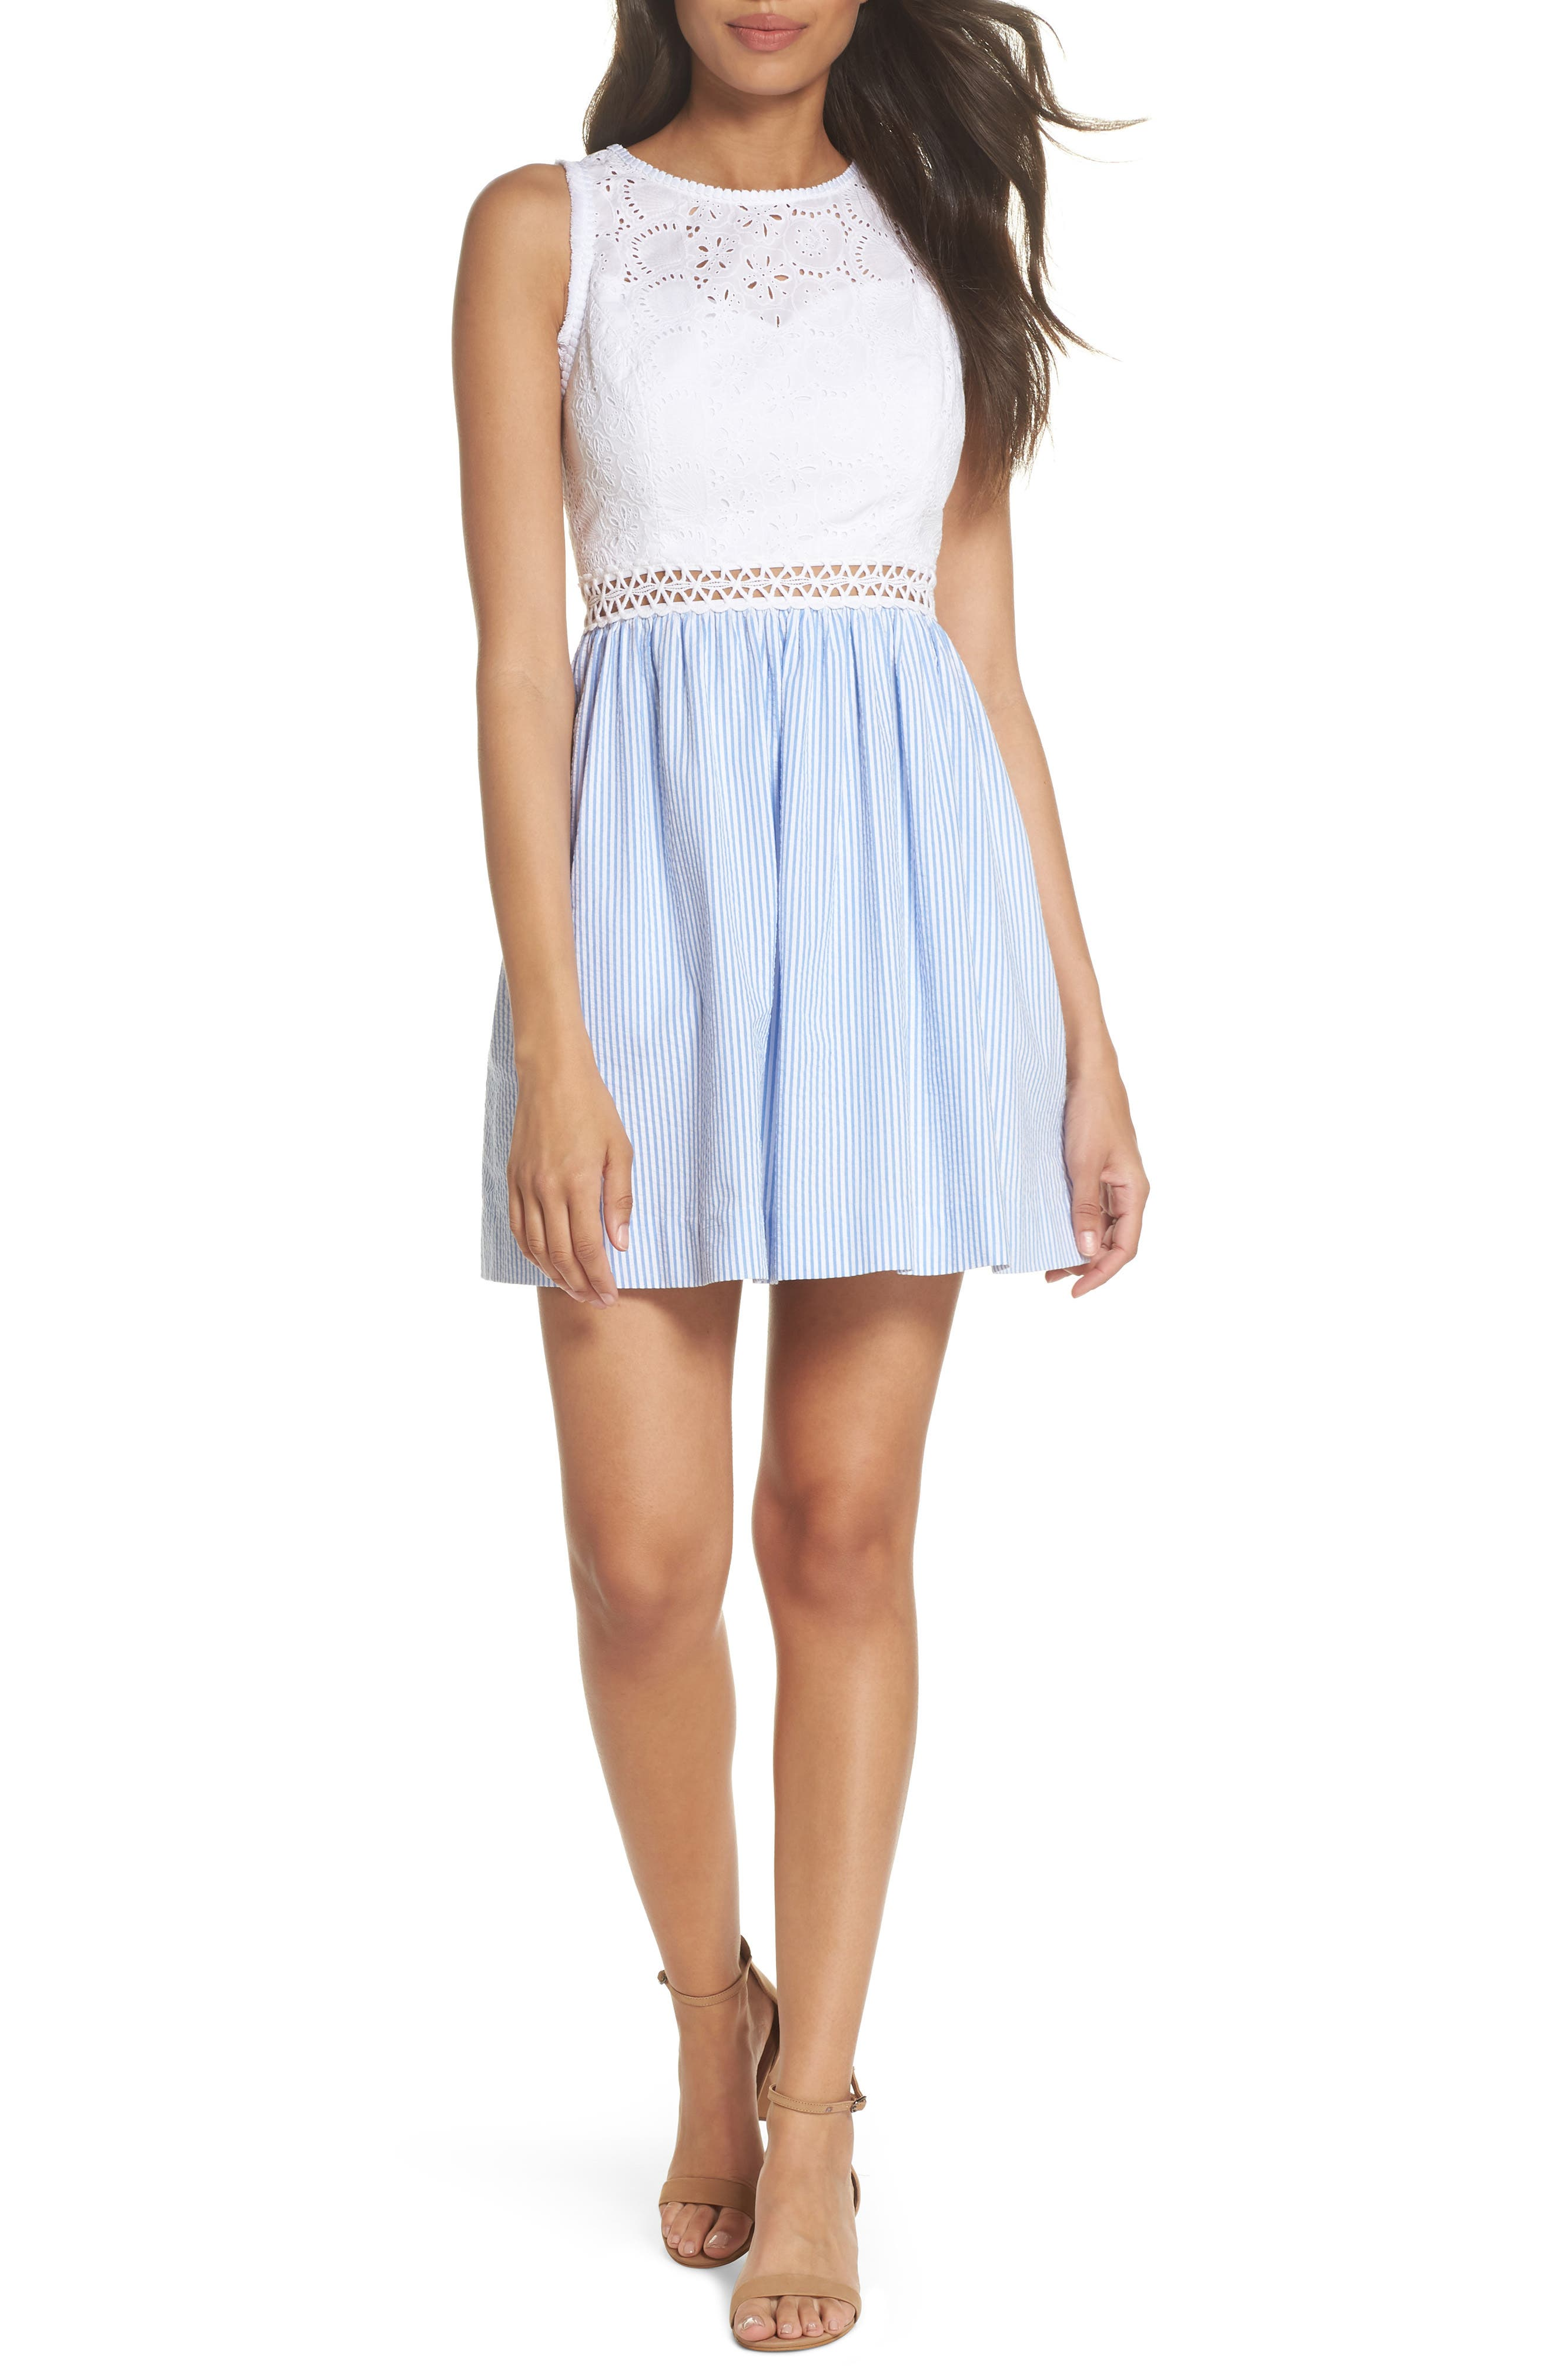 Lilly Pullitzer<sup>®</sup> Alivia Eyelet & Seersucker Fit & Flare Dress,                         Main,                         color, BENNET BLUE YARD DYED STRIPE